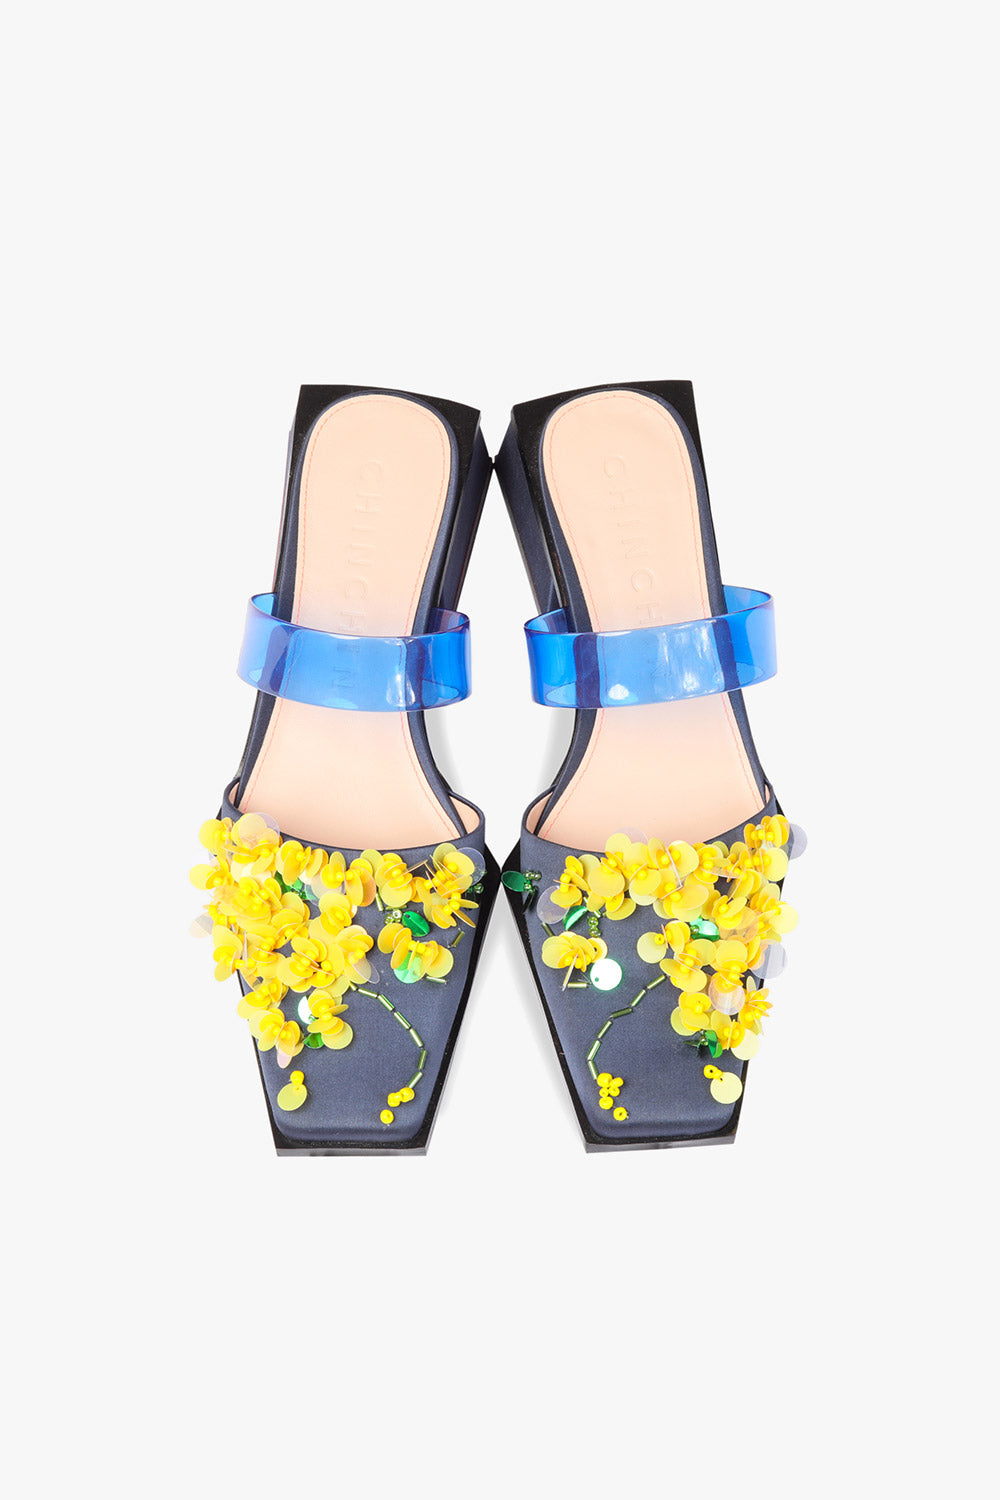 Floral Sequins Low Heel Mule Sandals